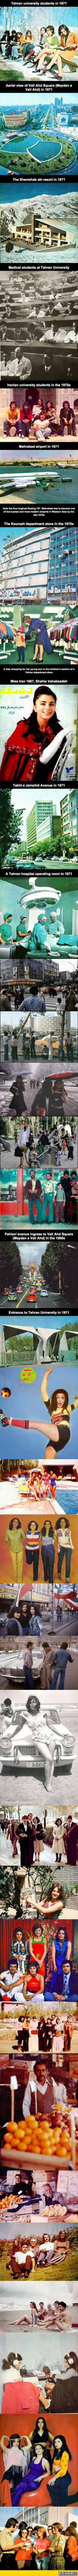 Iran In The 60s And 70s